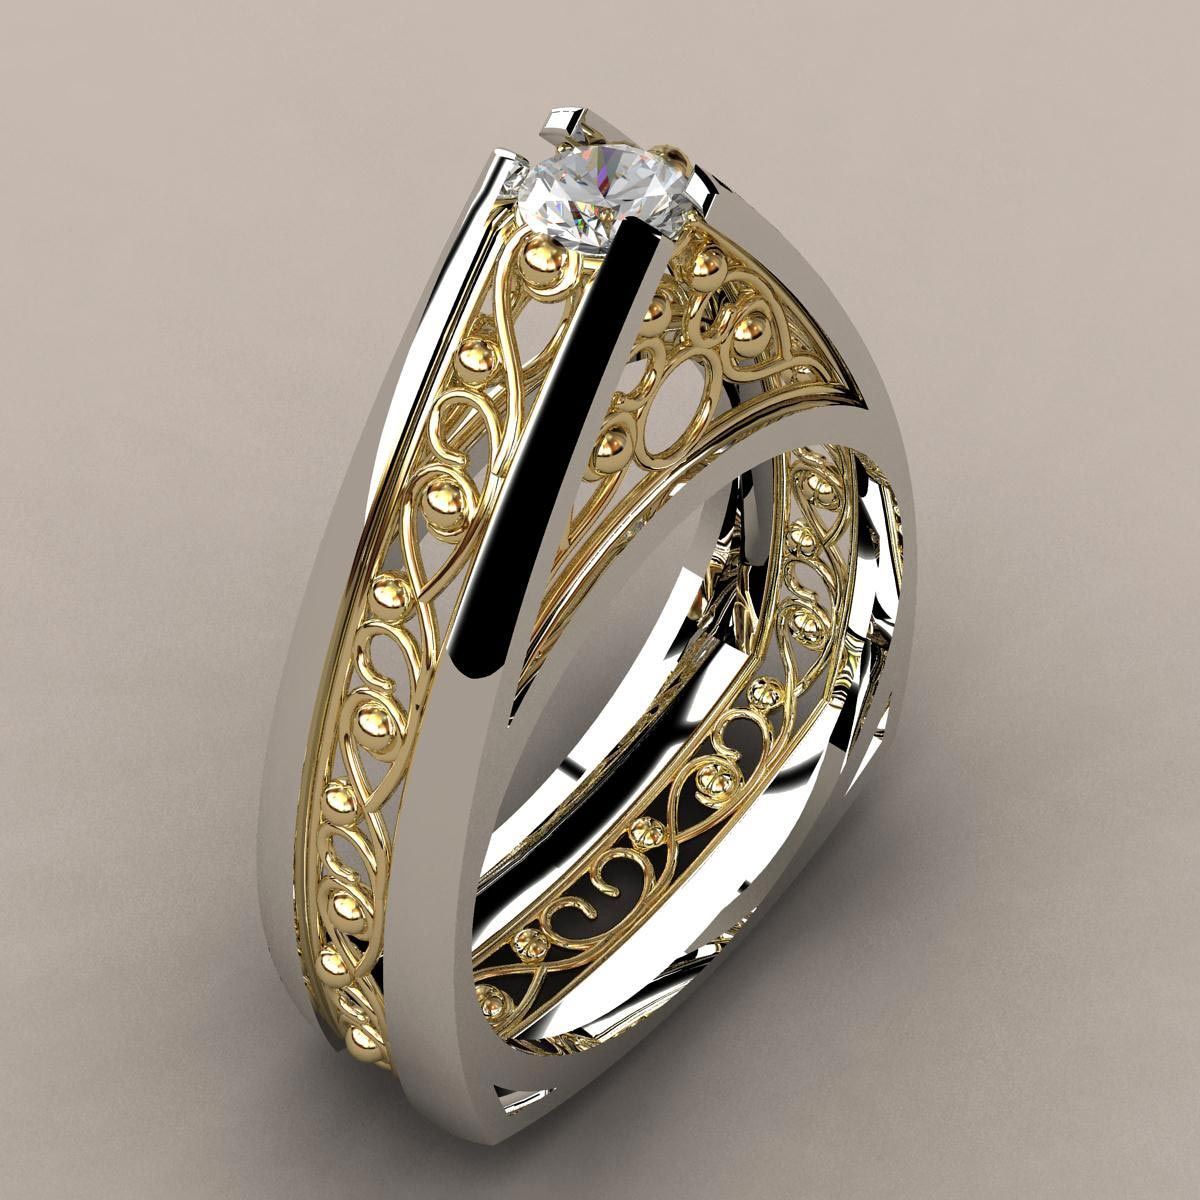 Greg Neeley Designs Custom Wedding Rings and Jewelry